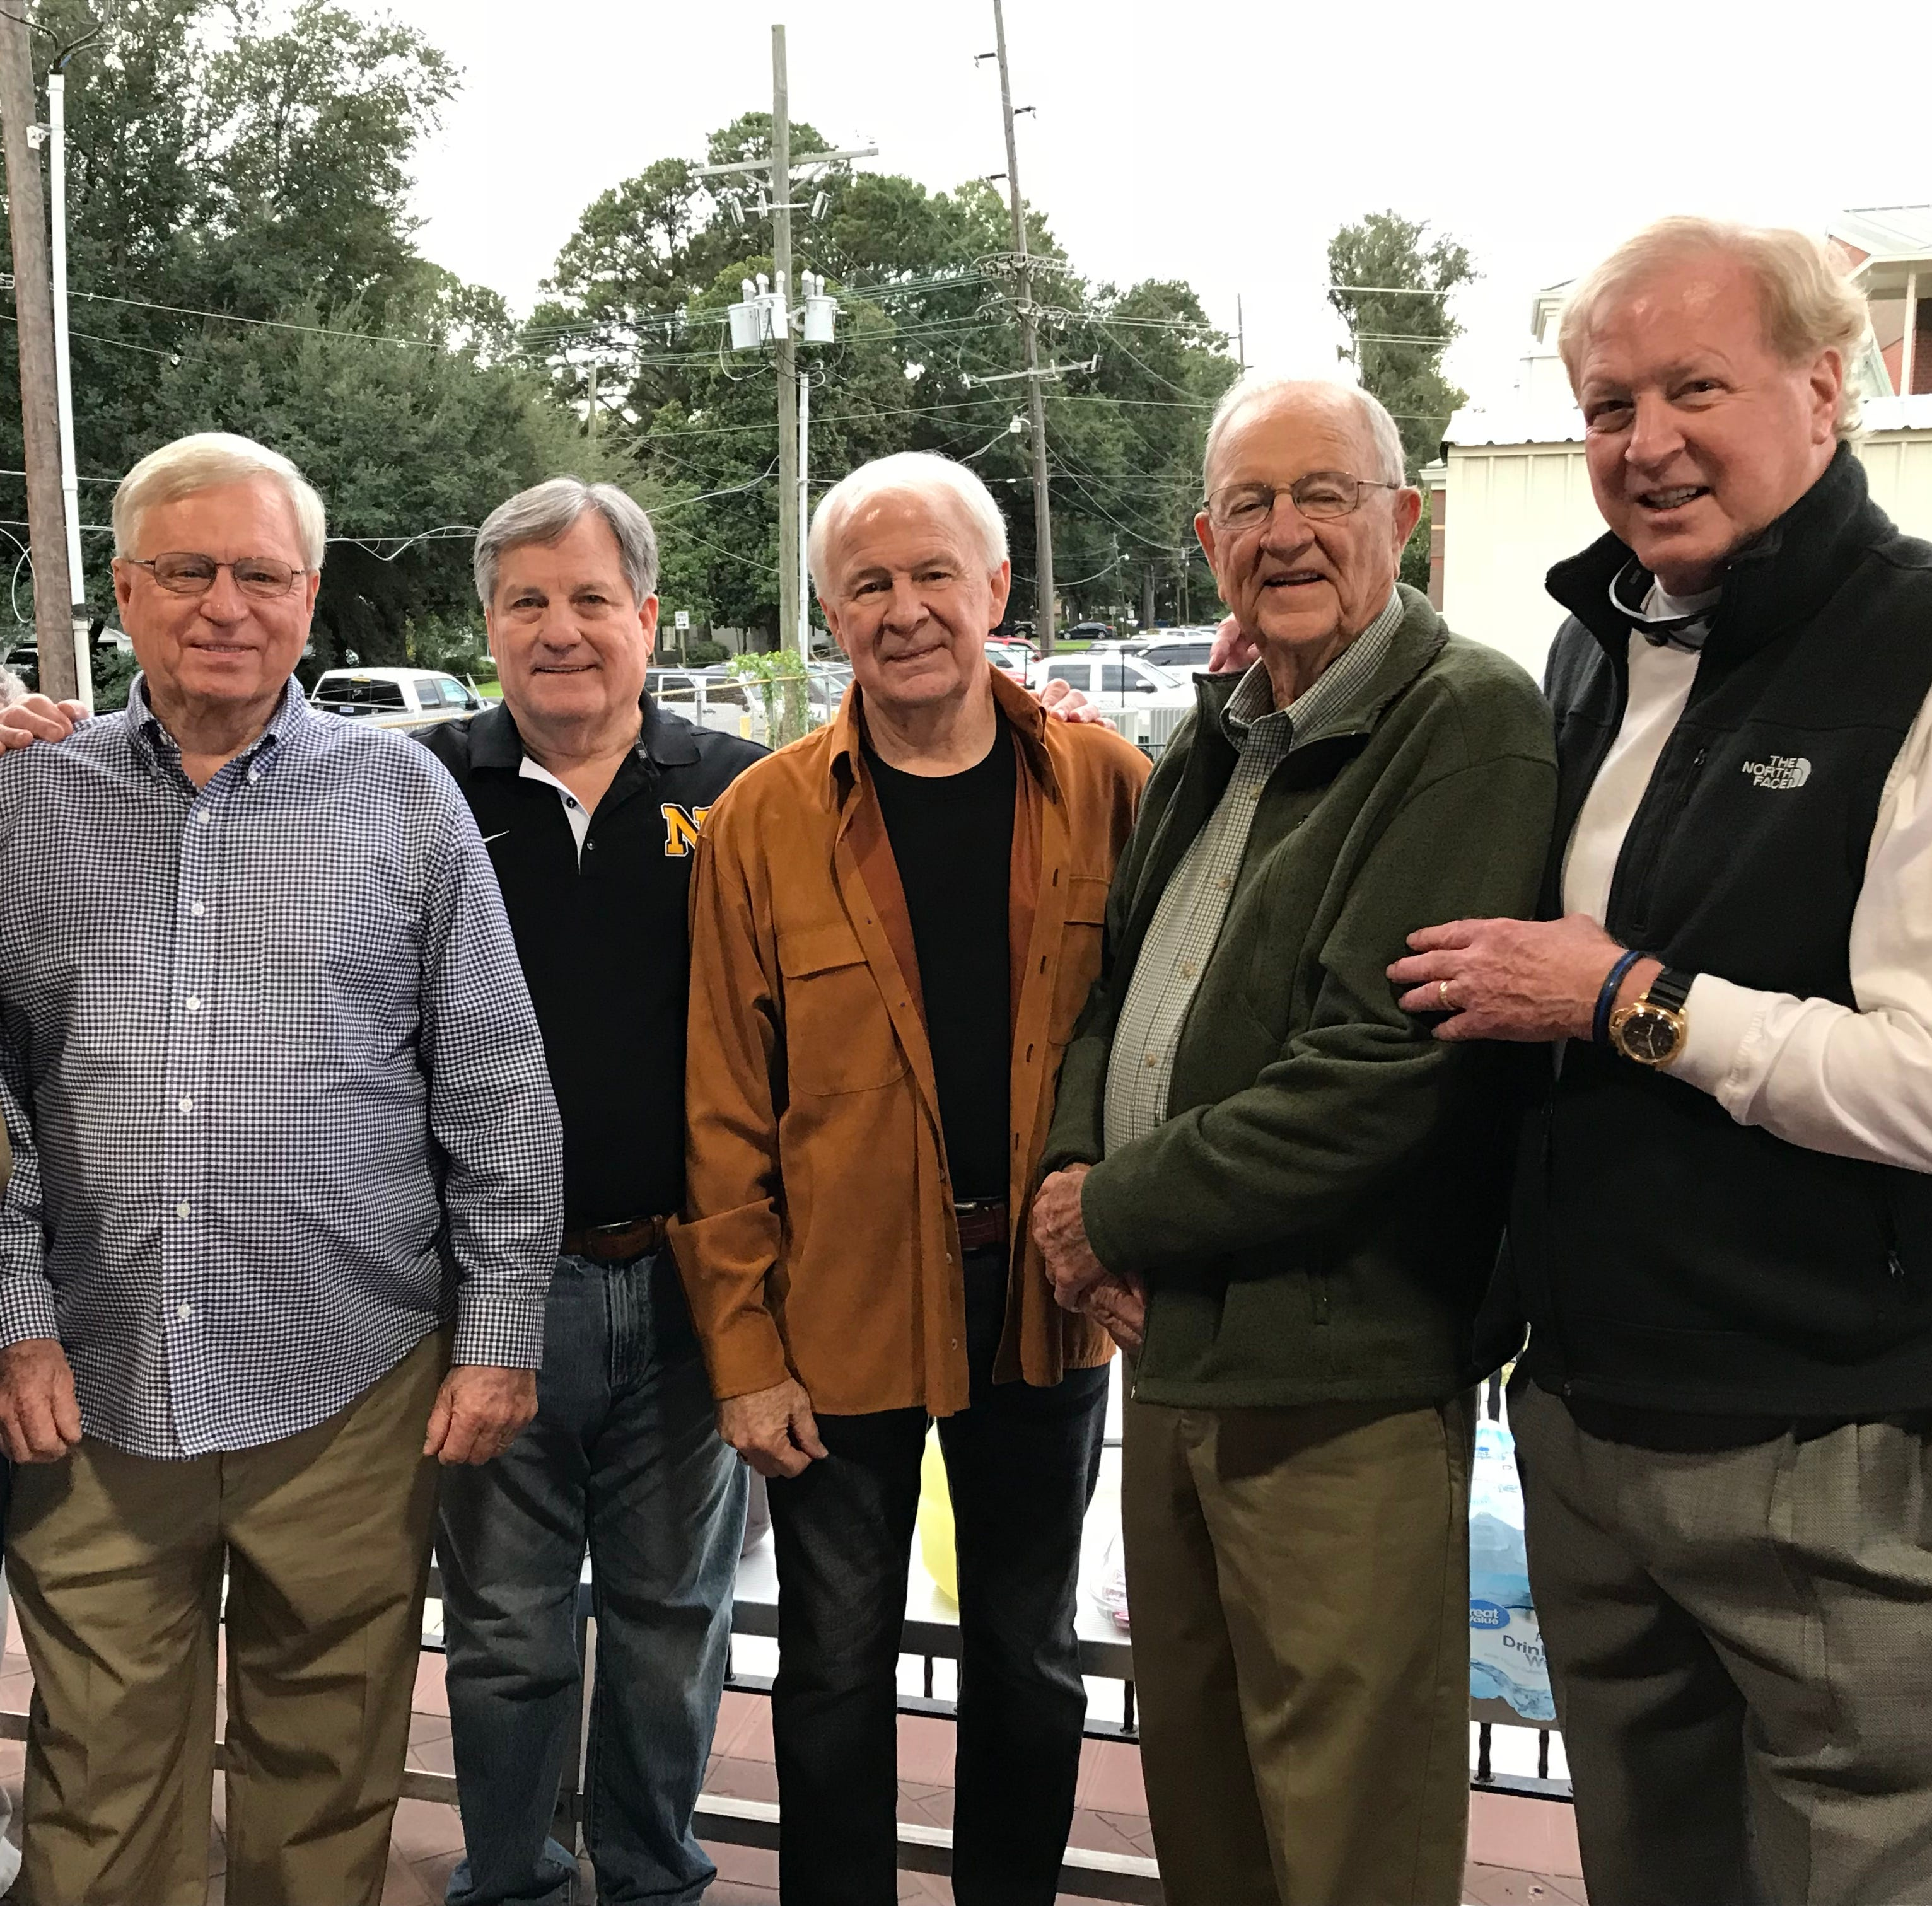 (Left to right) Joe Canal, Don Brown, Steven Jefferson, Jim Howard, Coach George Davis and Bumzy Bryant catch up at Neville's 1962 track and field reunion on Friday at Bill Ruple Stadium.